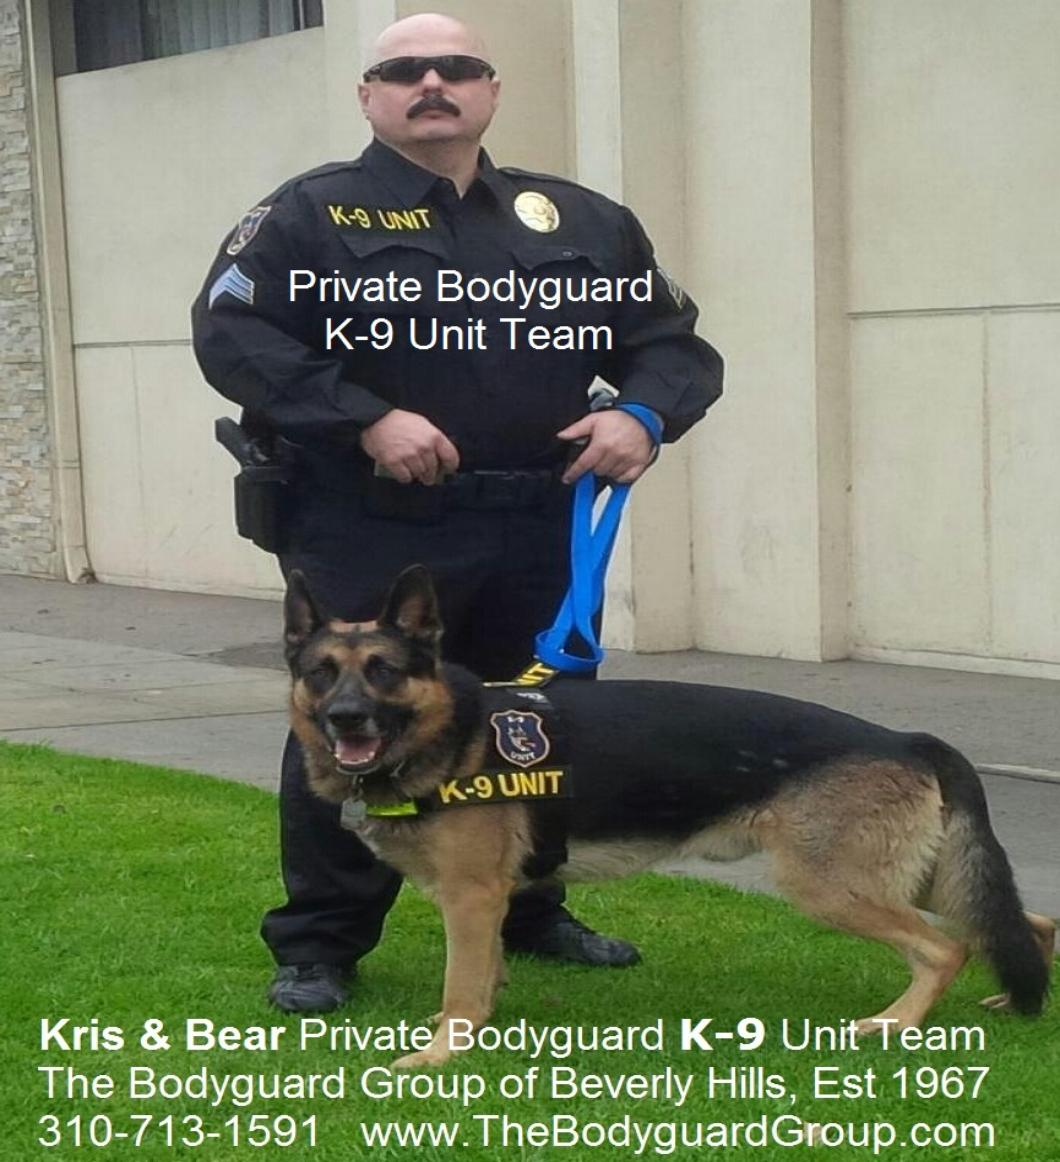 kris_and_bear_herzog_security_k-9_team_from_the_bodyguard_group_of_beverly_hills_2_-1060x1162